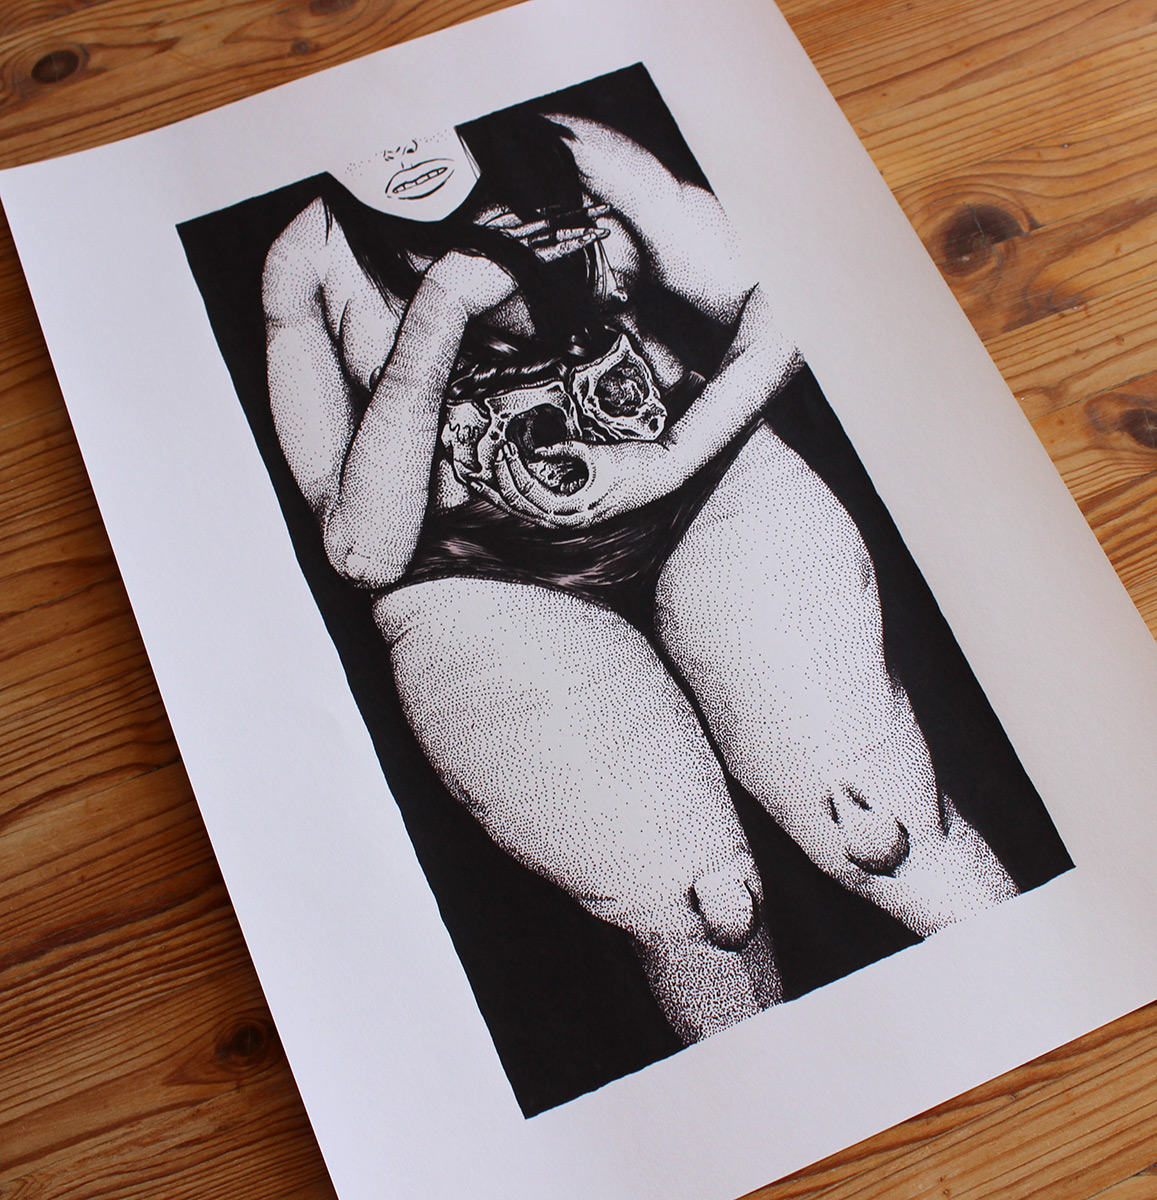 art-prints, gliceé, figurative, monochrome, portraiture, bodies, black, white, ink, paper, black-and-white, contemporary-art, danish, design, interior, interior-design, modern, modern-art, nordic, posters, prints, scandinavien, Buy original high quality art. Paintings, drawings, limited edition prints & posters by talented artists.